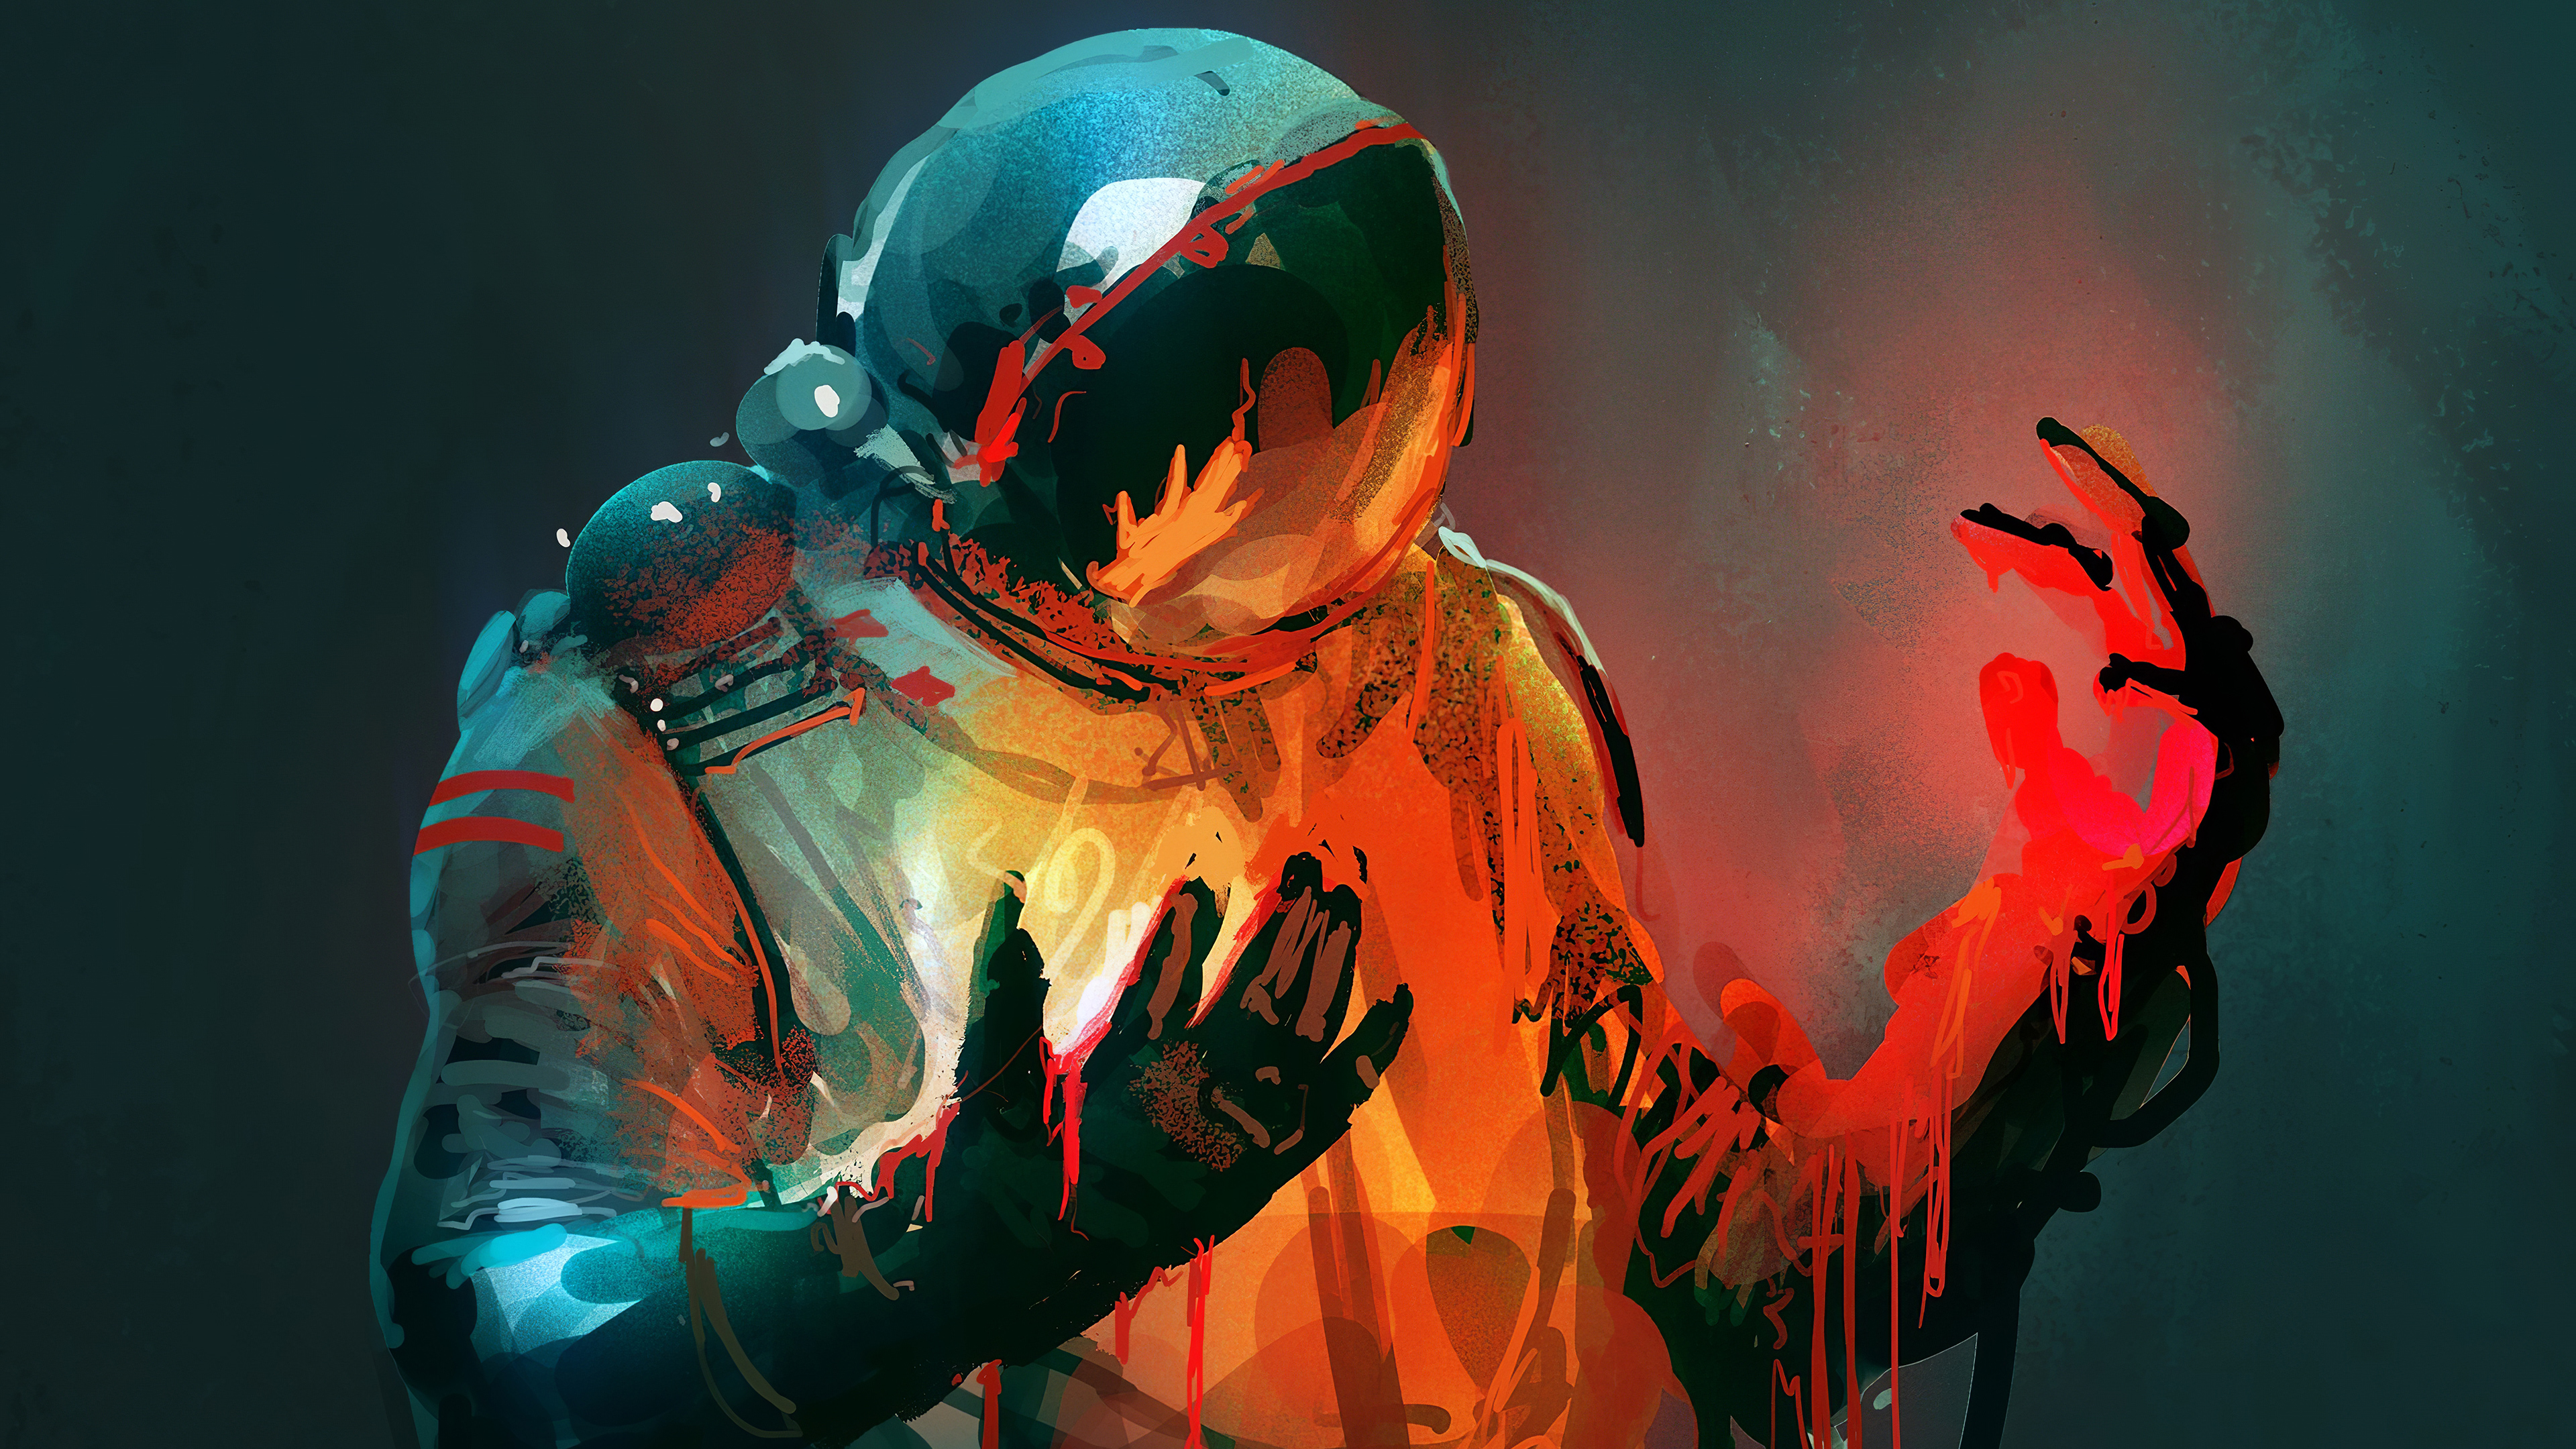 General 3840x2160 spacesuit Nikolai Lockertsen astronaut digital digital art